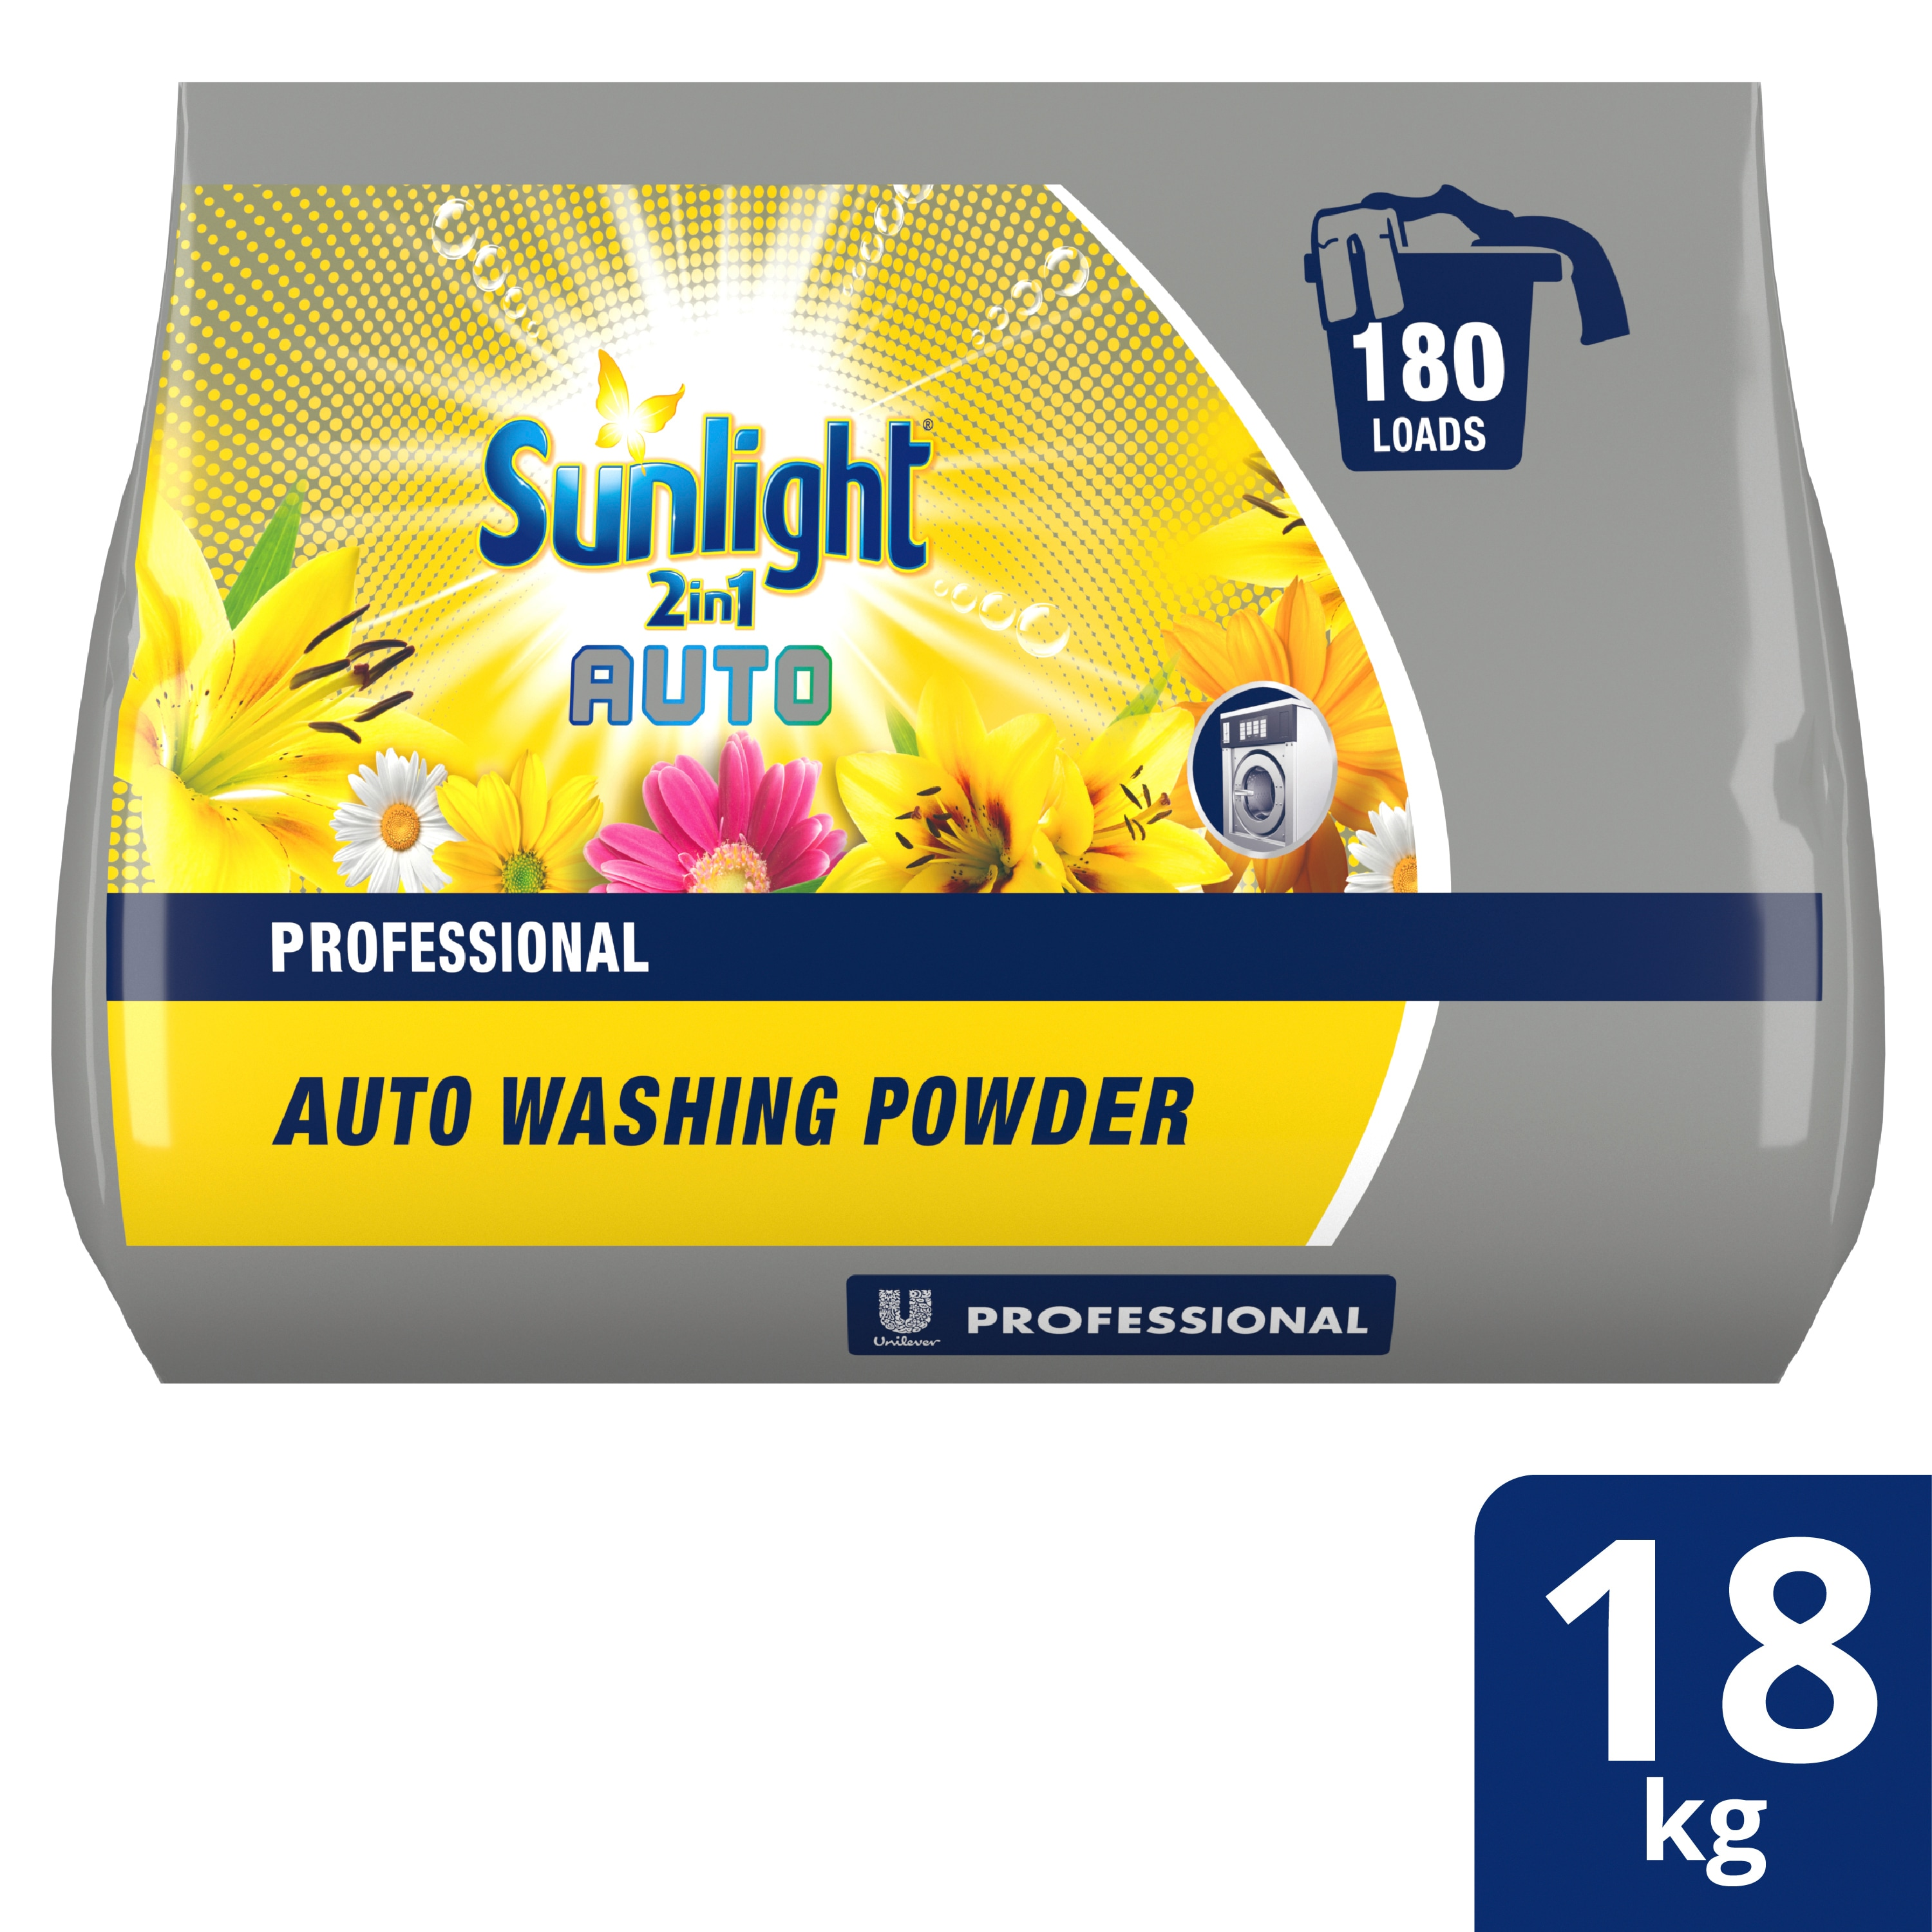 Unilever Professional Sunlight 2-in-1 Auto Washing Powder 18 Kg - Sunlight 2-in-1 Auto Washing Powder 18 kg  has a longer shelf life which means it can be bought in bulk. With Optical Brightener, it delivers a powerful clean and sensational fragrance whilst being delicate on fabrics.